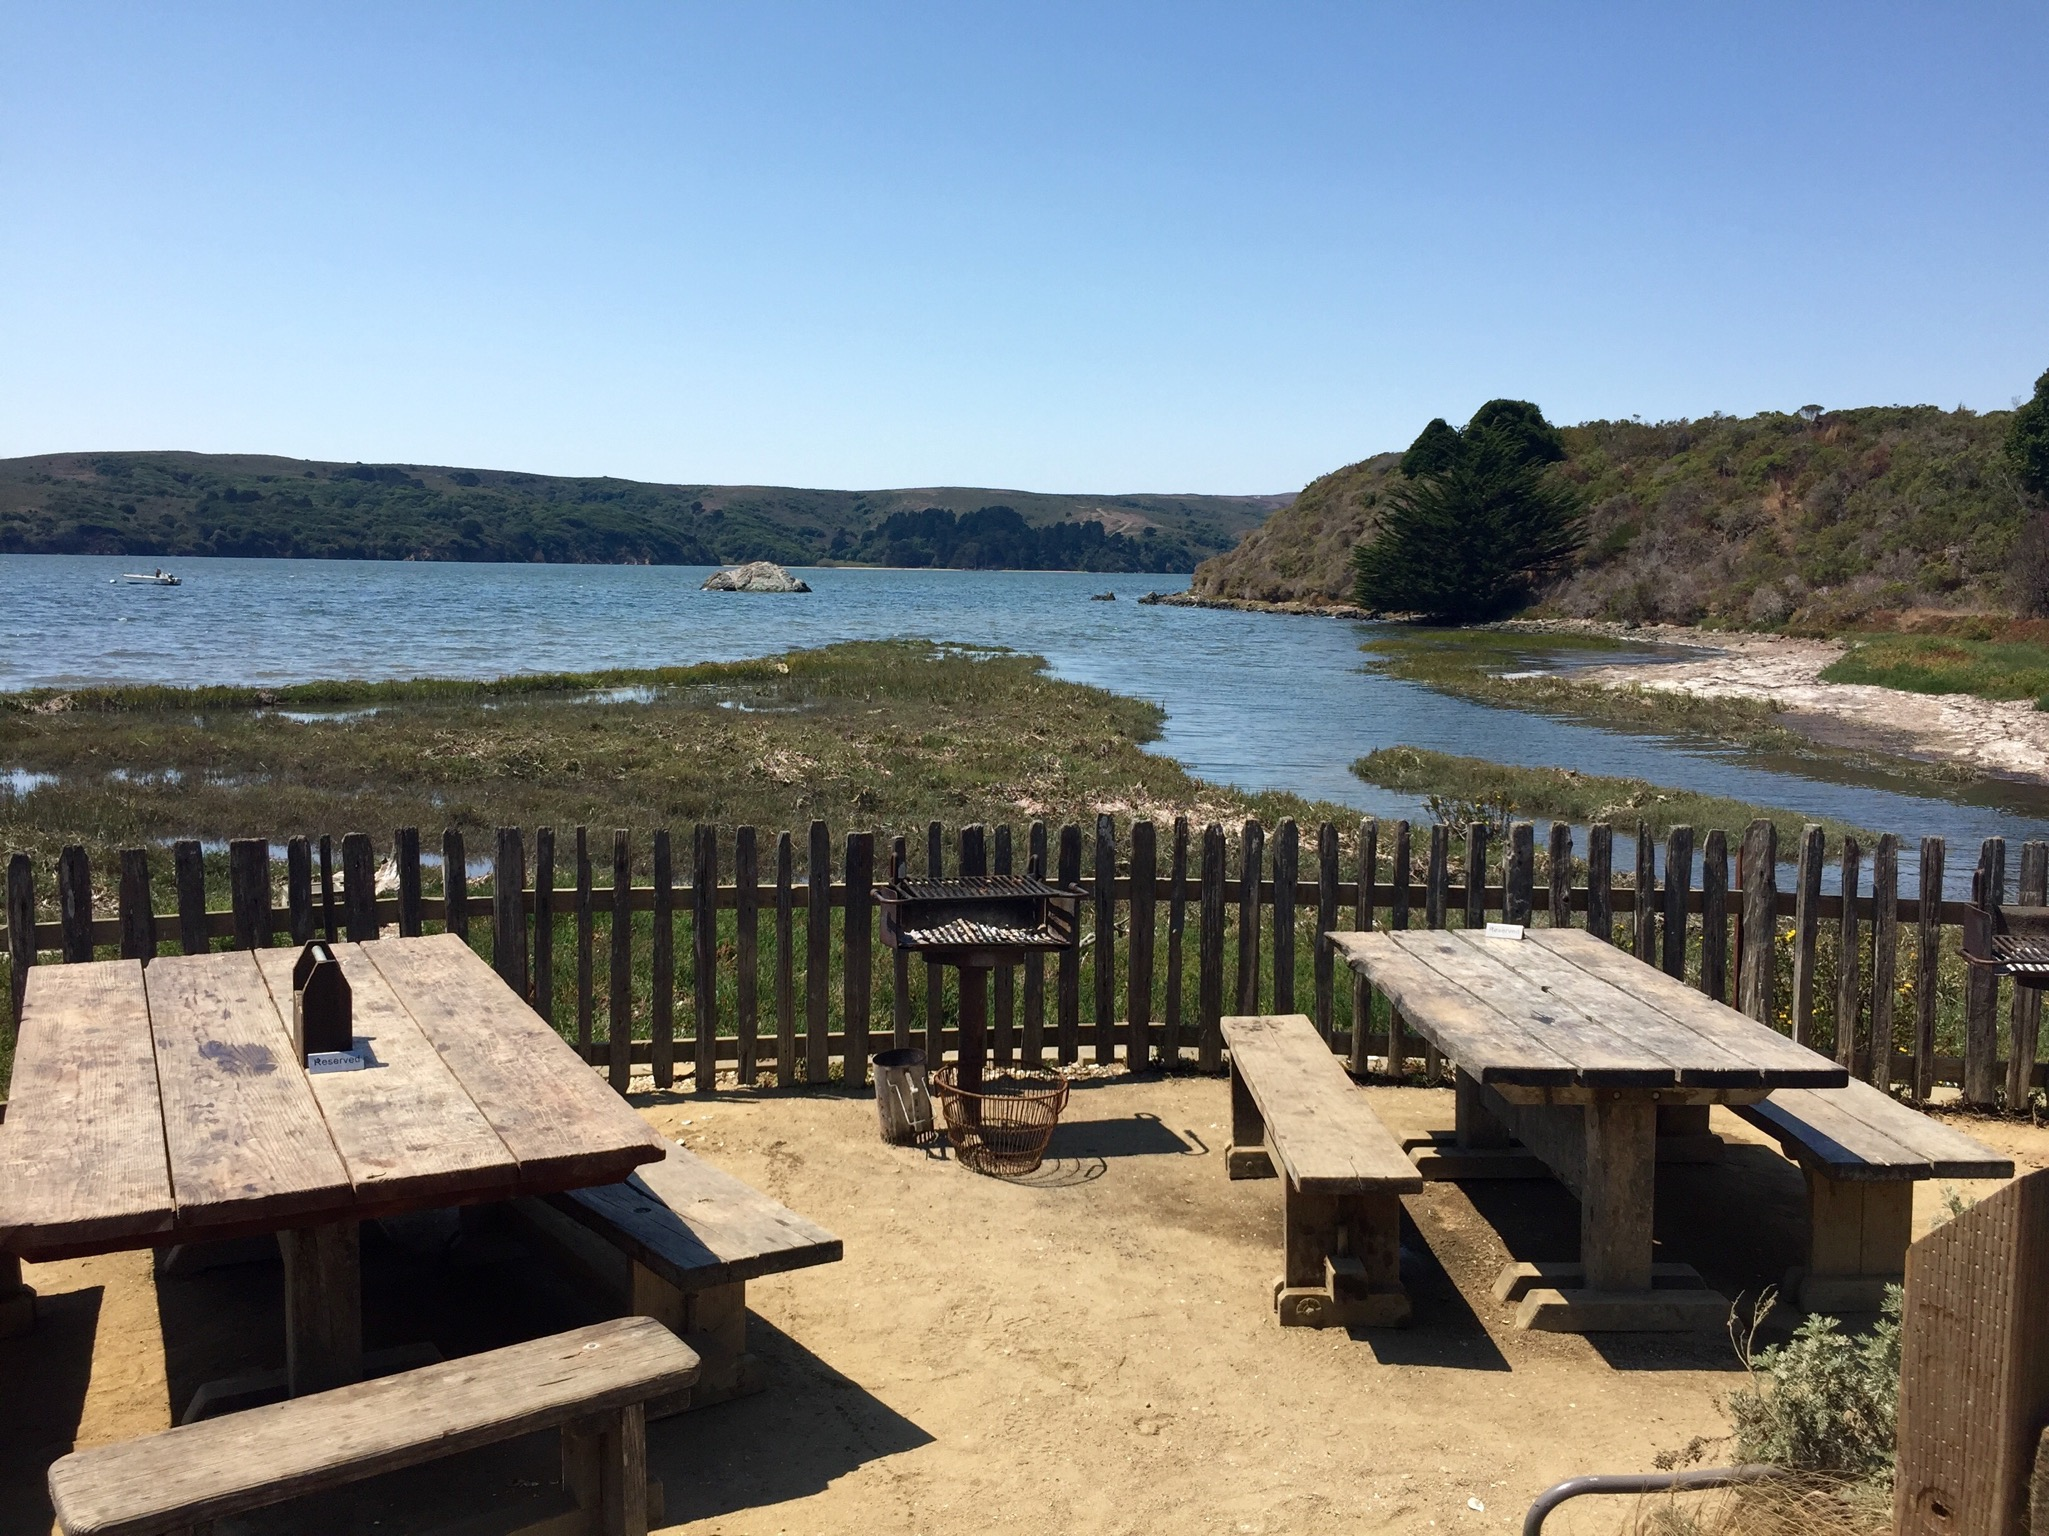 Tomales Bay views from Hog Island.